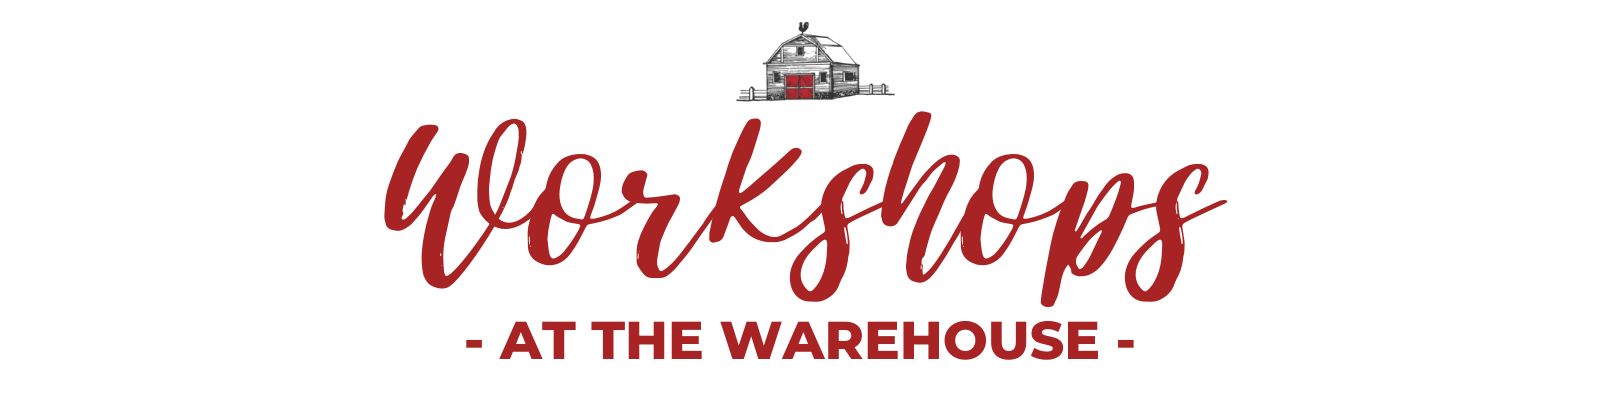 Workshops at the Warehouse